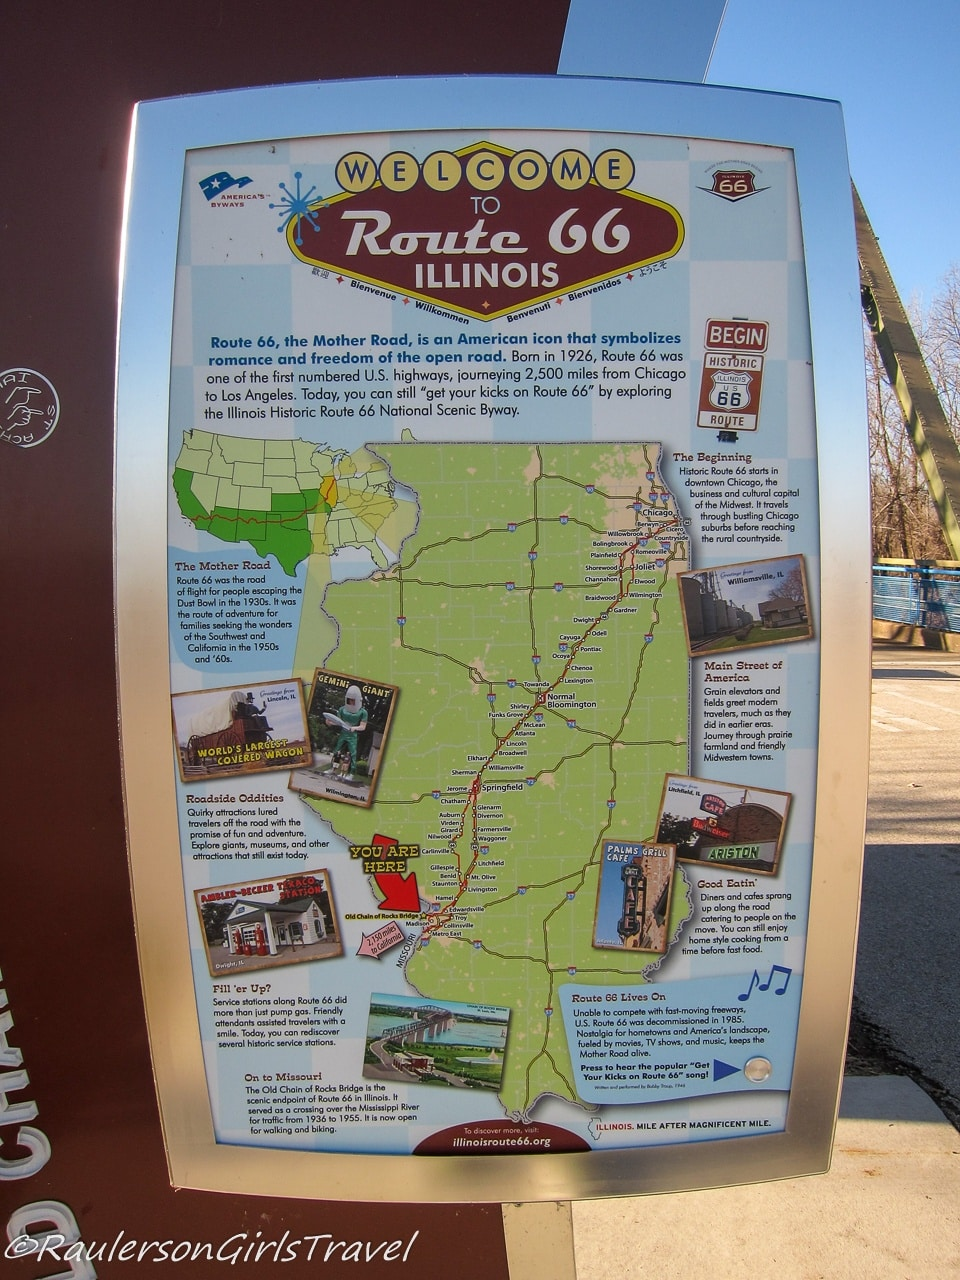 Welcome to Route 66 Illinois Sign